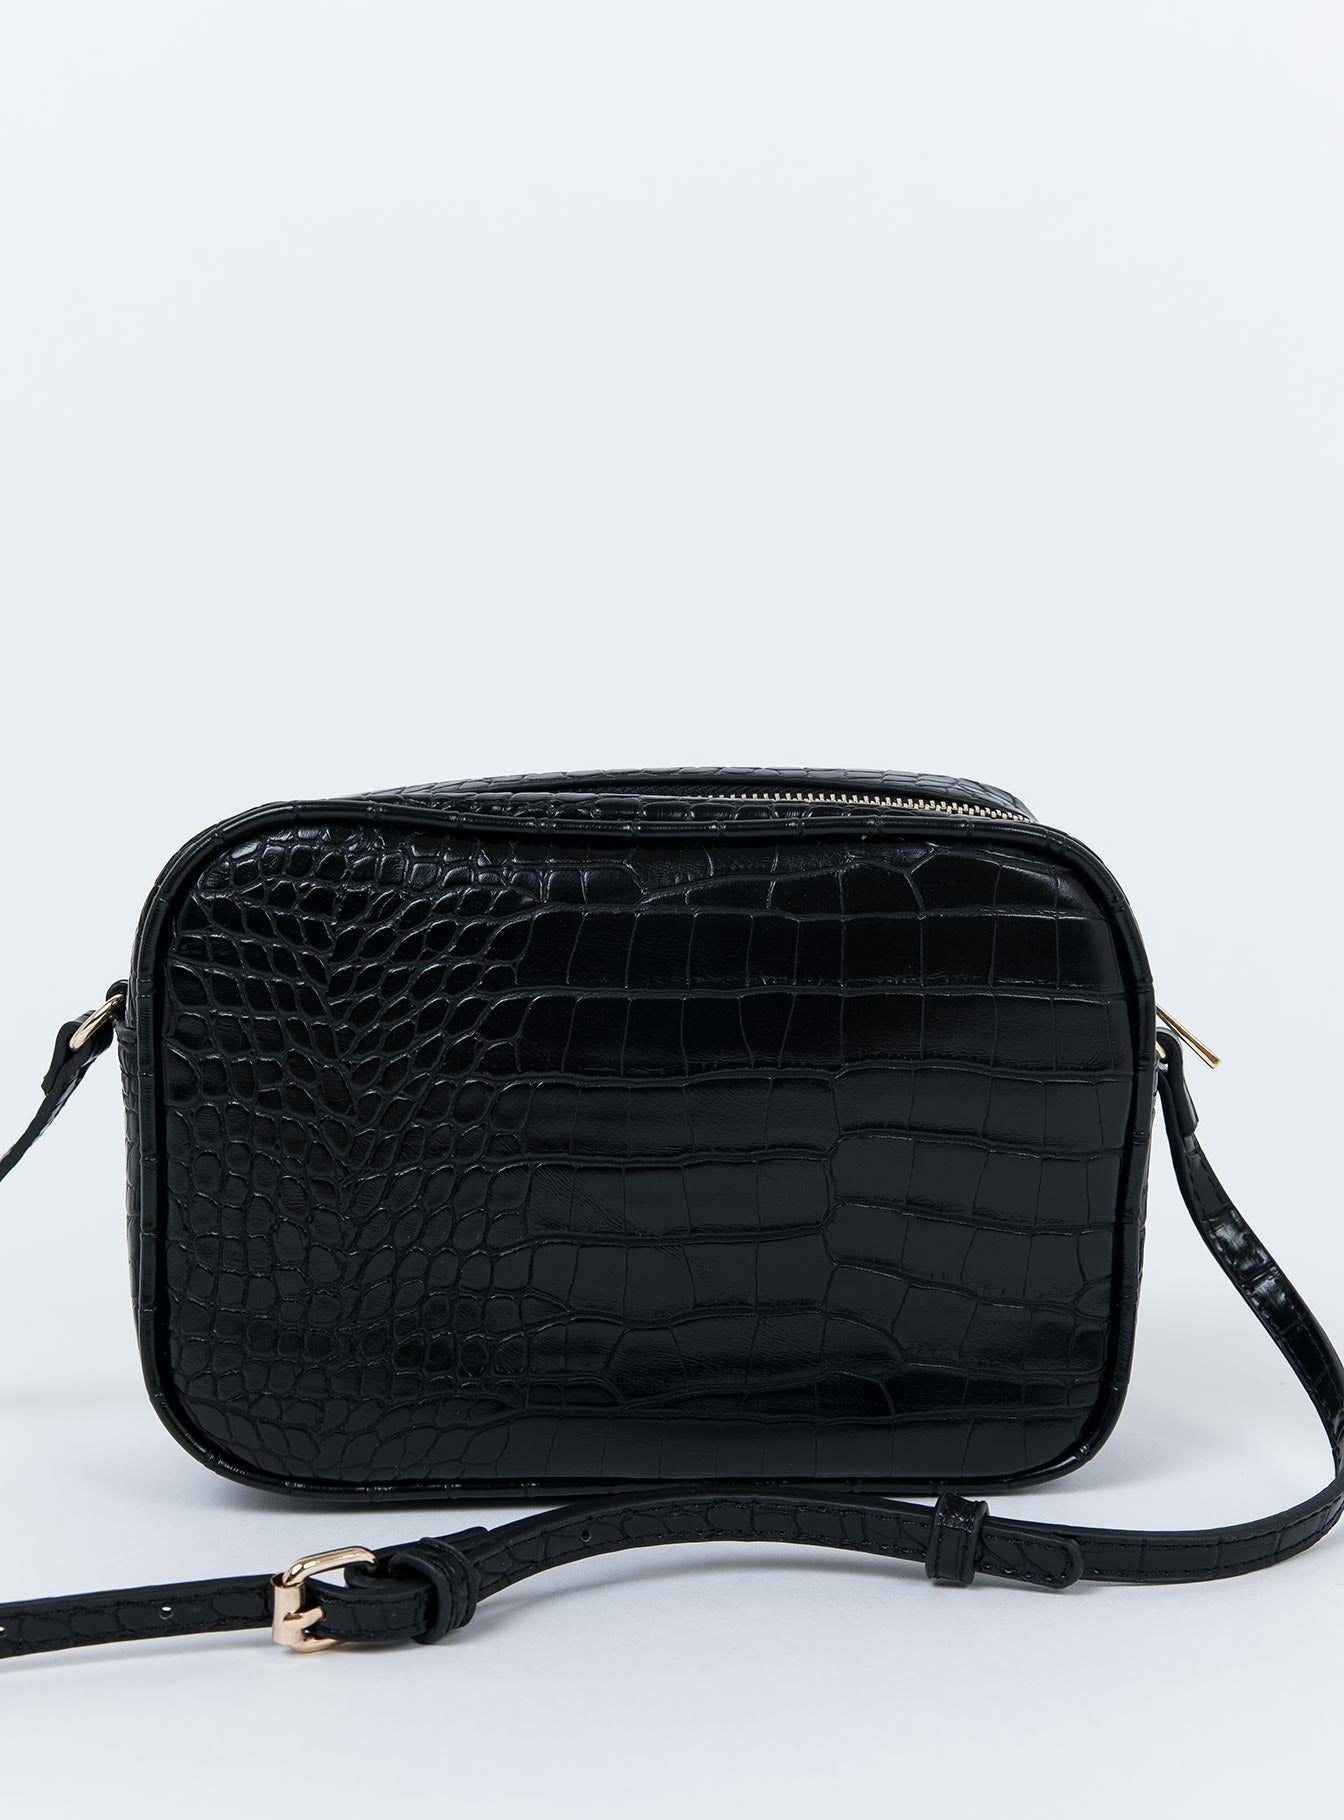 Peta & Jain Gracie Shoulder Bag Black Croc